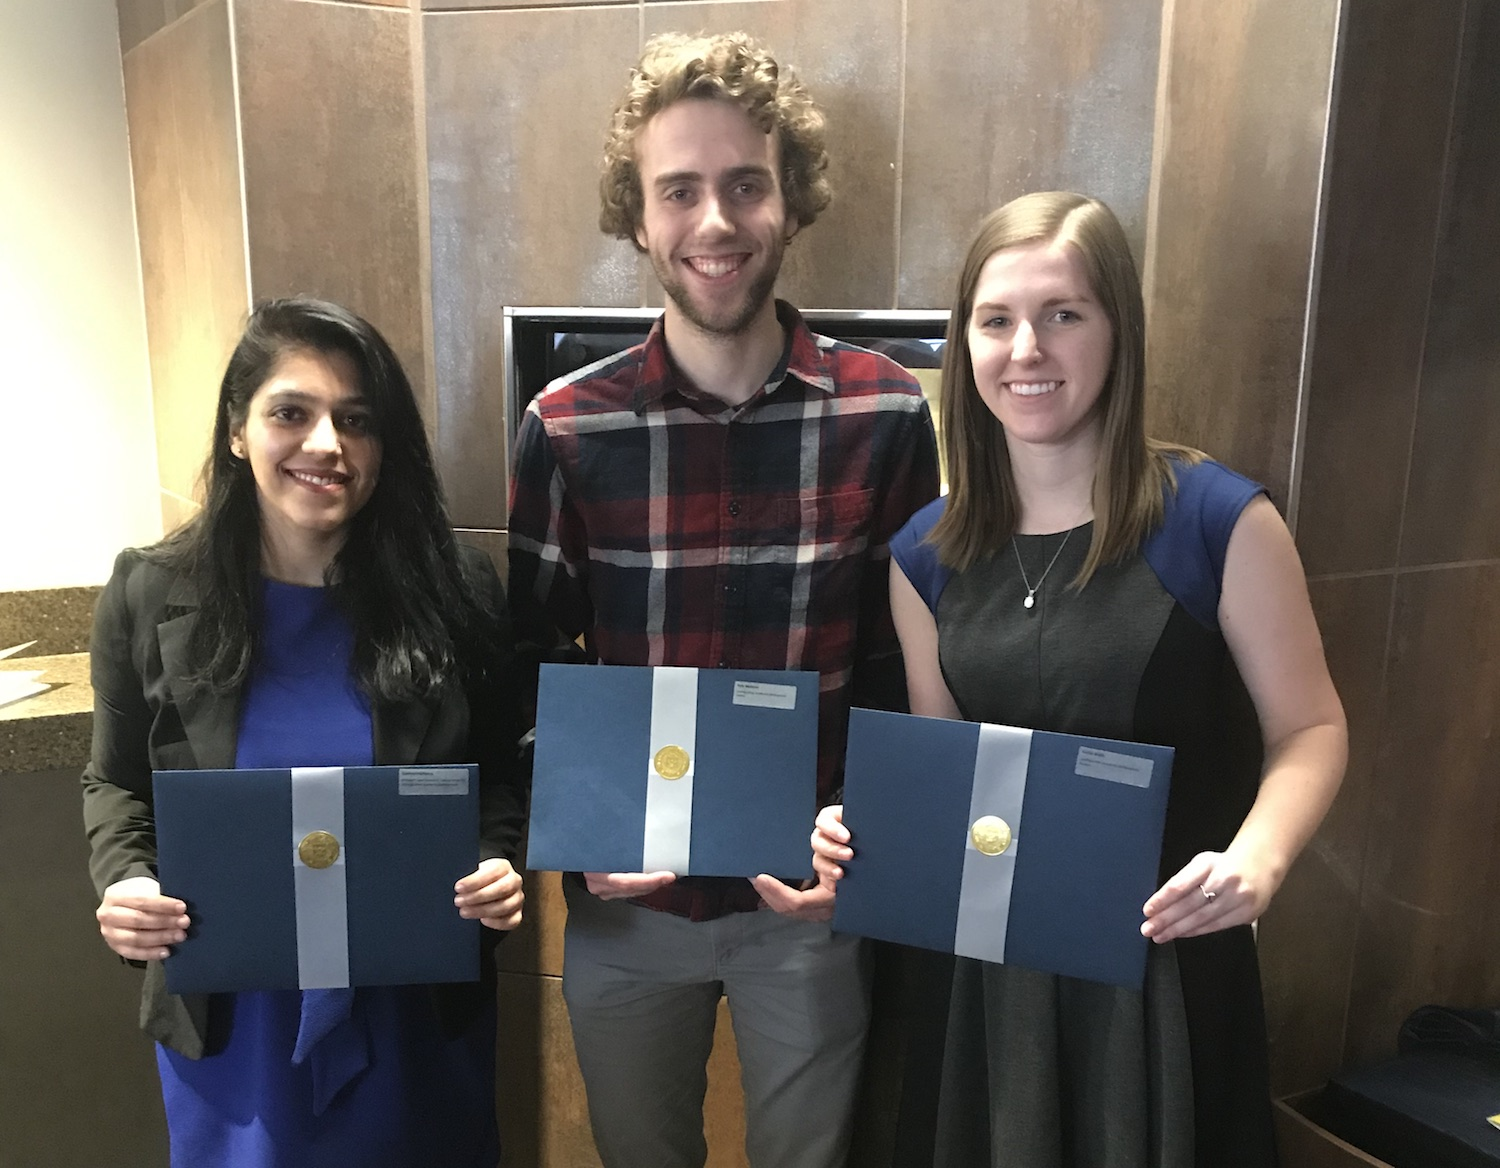 Leaders and Honors Award recipients, Garima Malhotra (l); Kyle Webster (c); Karlie Wells (r)